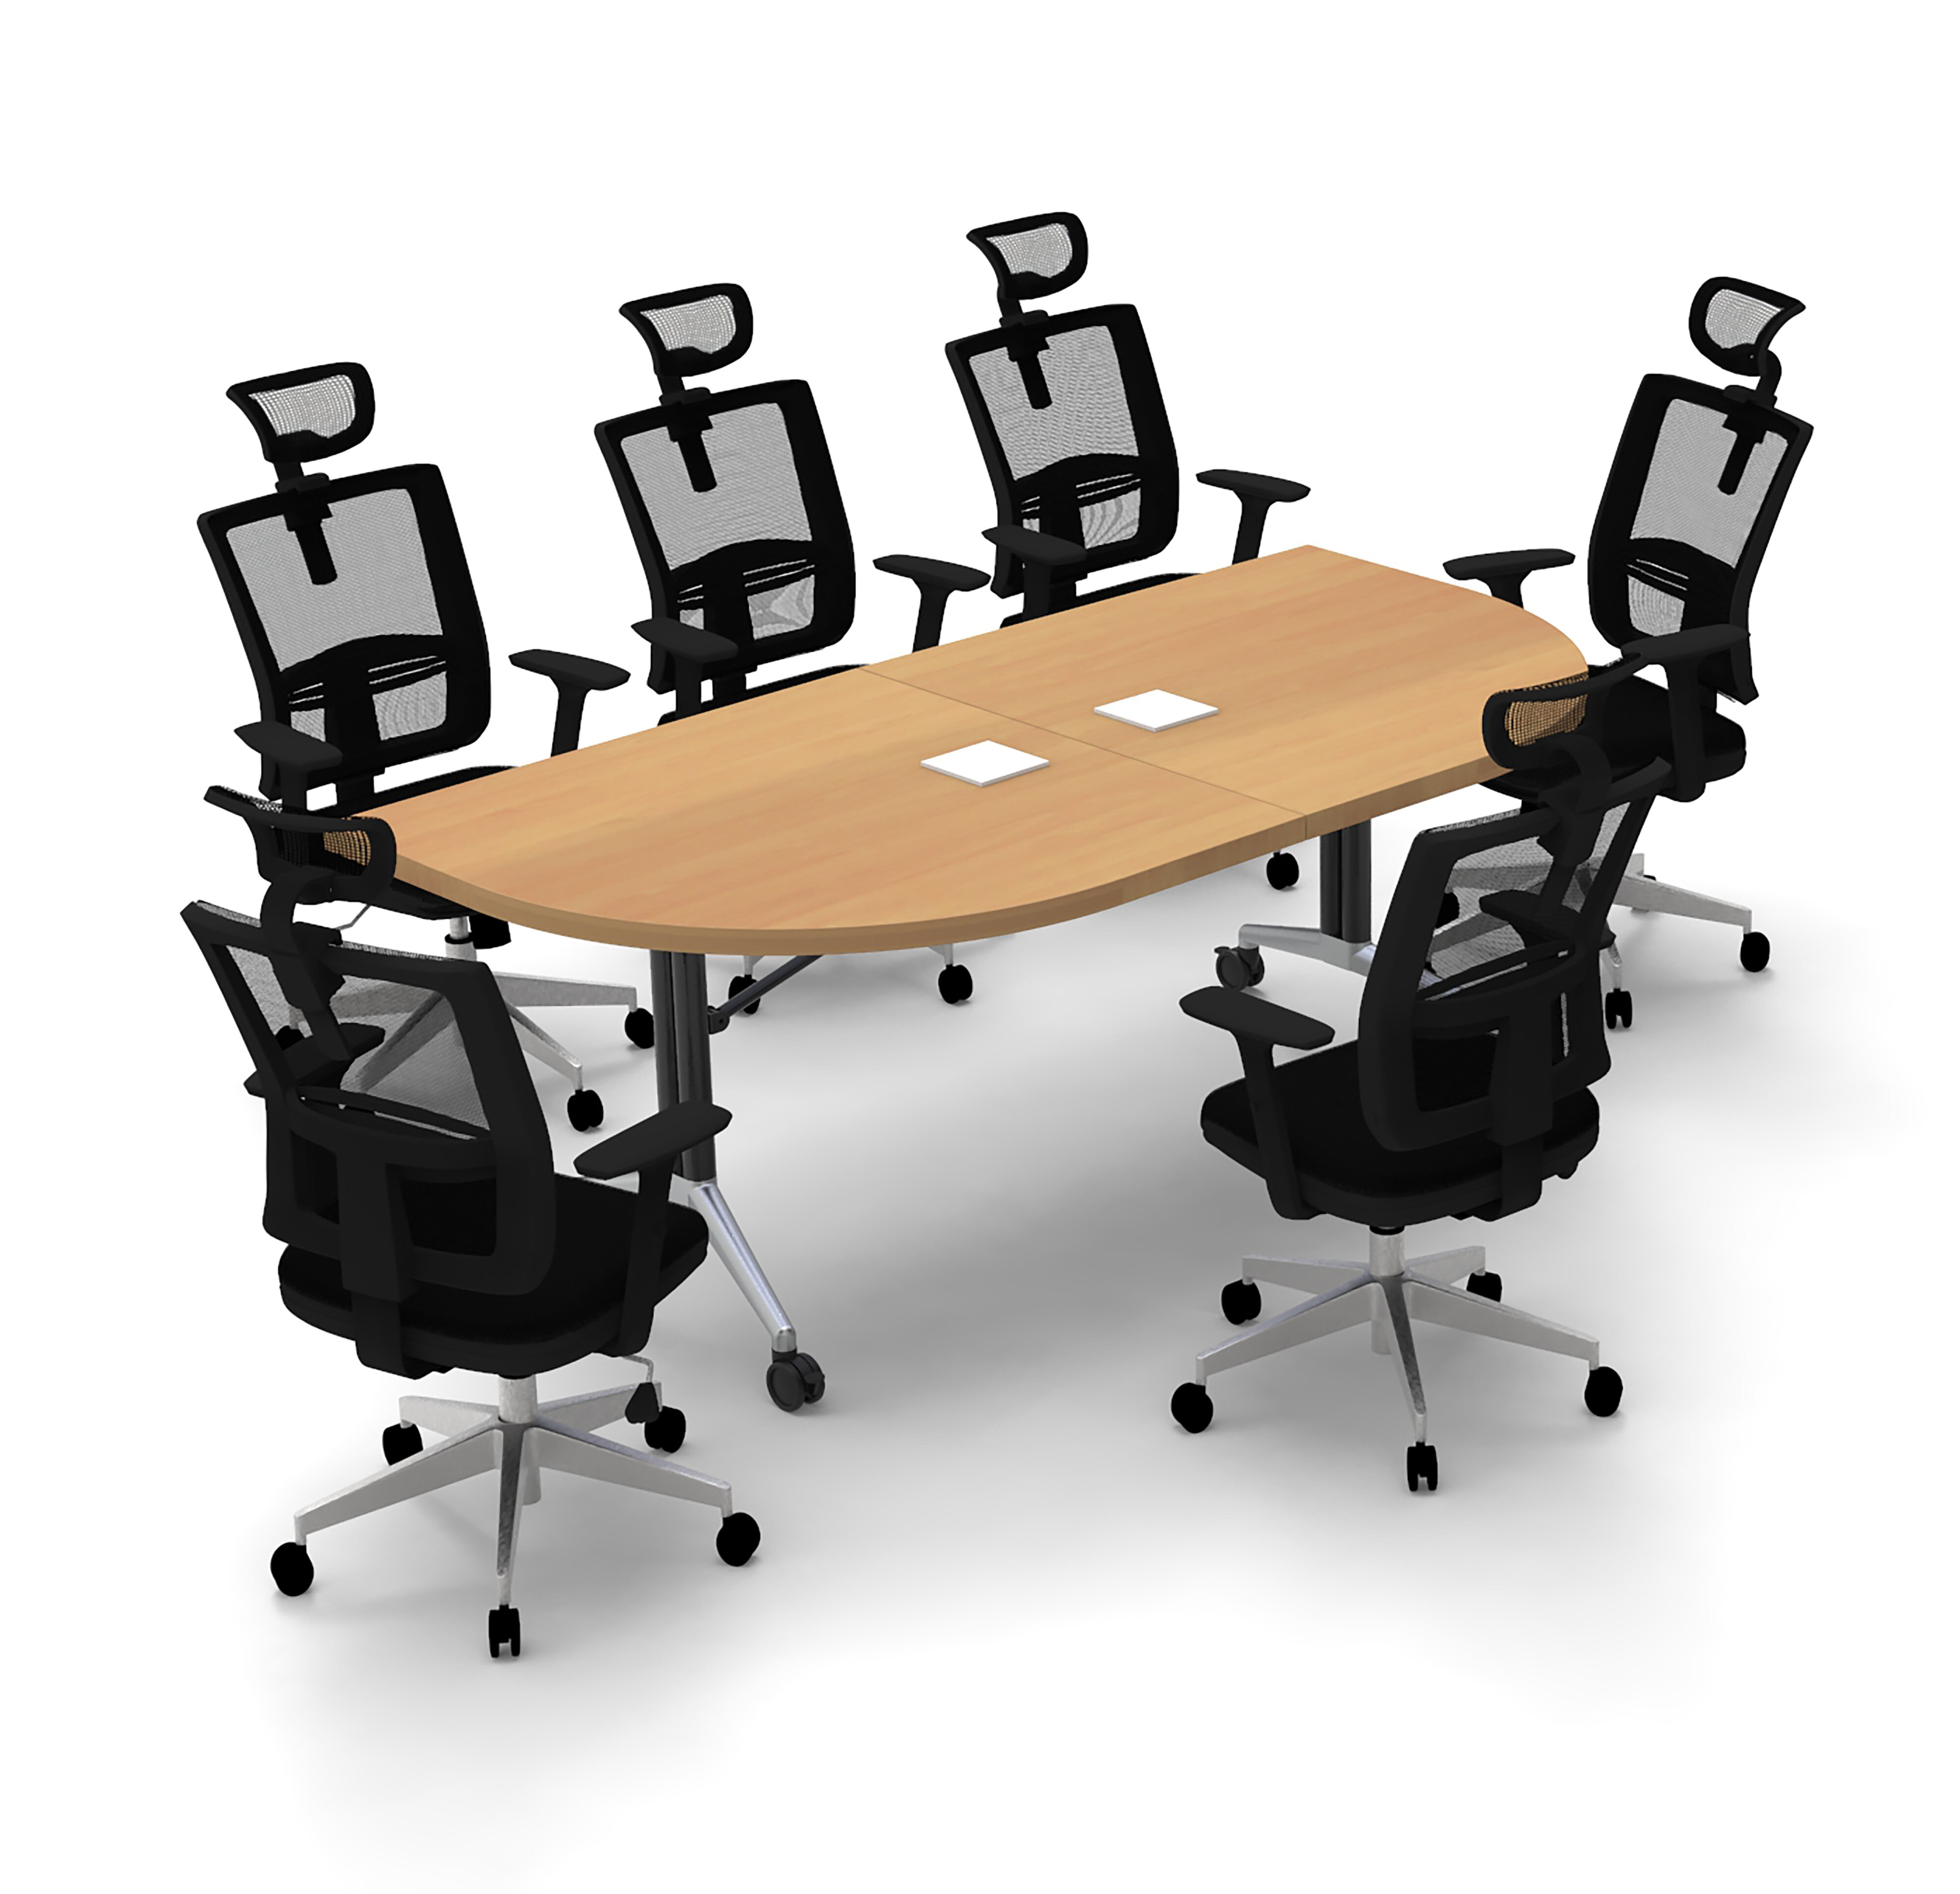 Inbox Zero Altheia Half Round Conference Meeting Table And Chair Set Wayfair